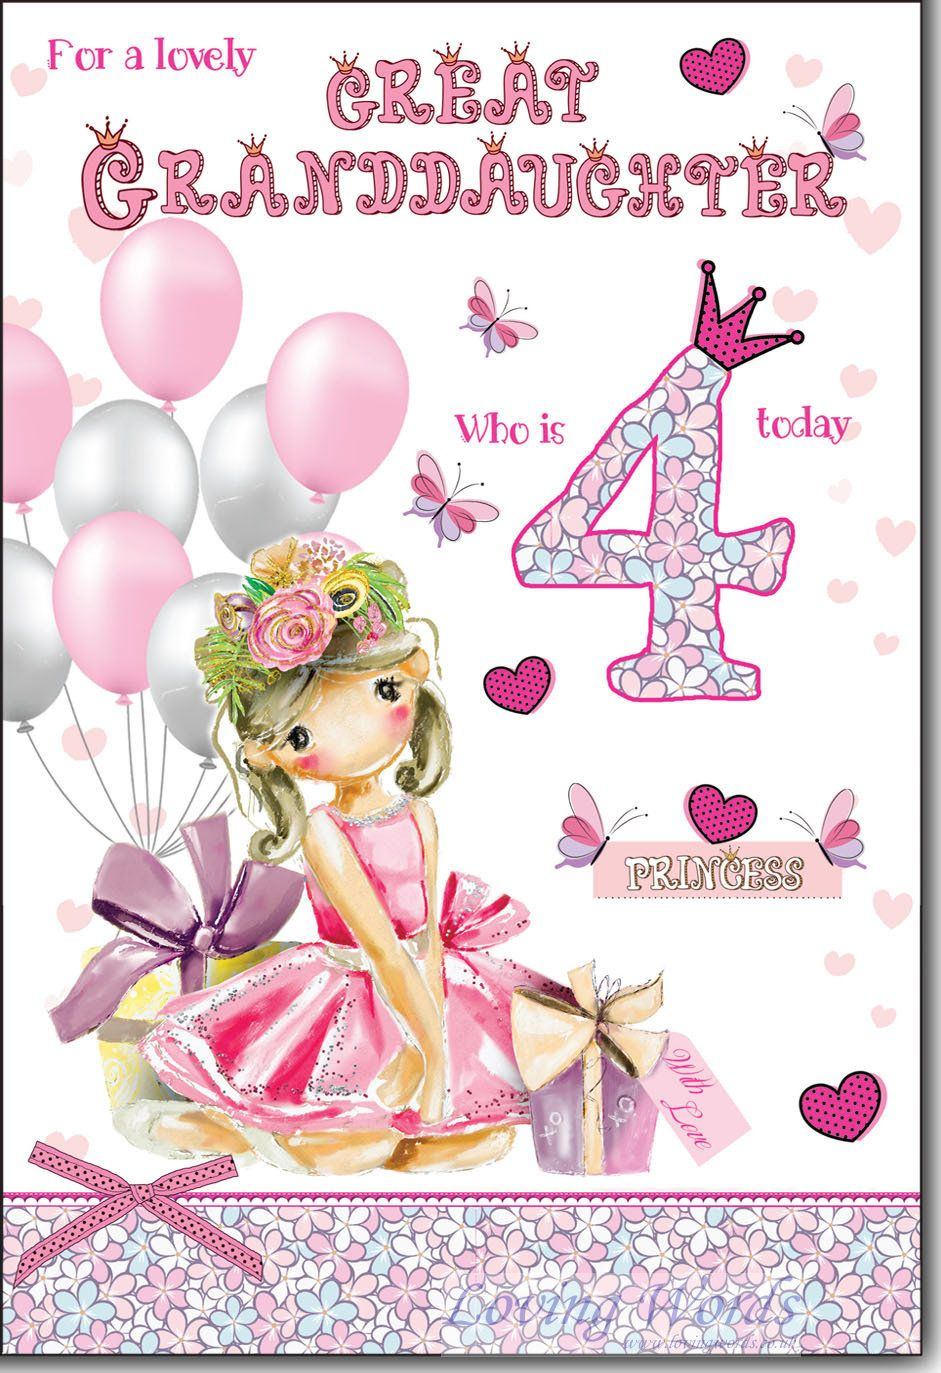 Check Best Of Free Birthday Cards For Granddaughter In 2020 Free Birthday Card Free Birthday Stuff Birthday Card Template